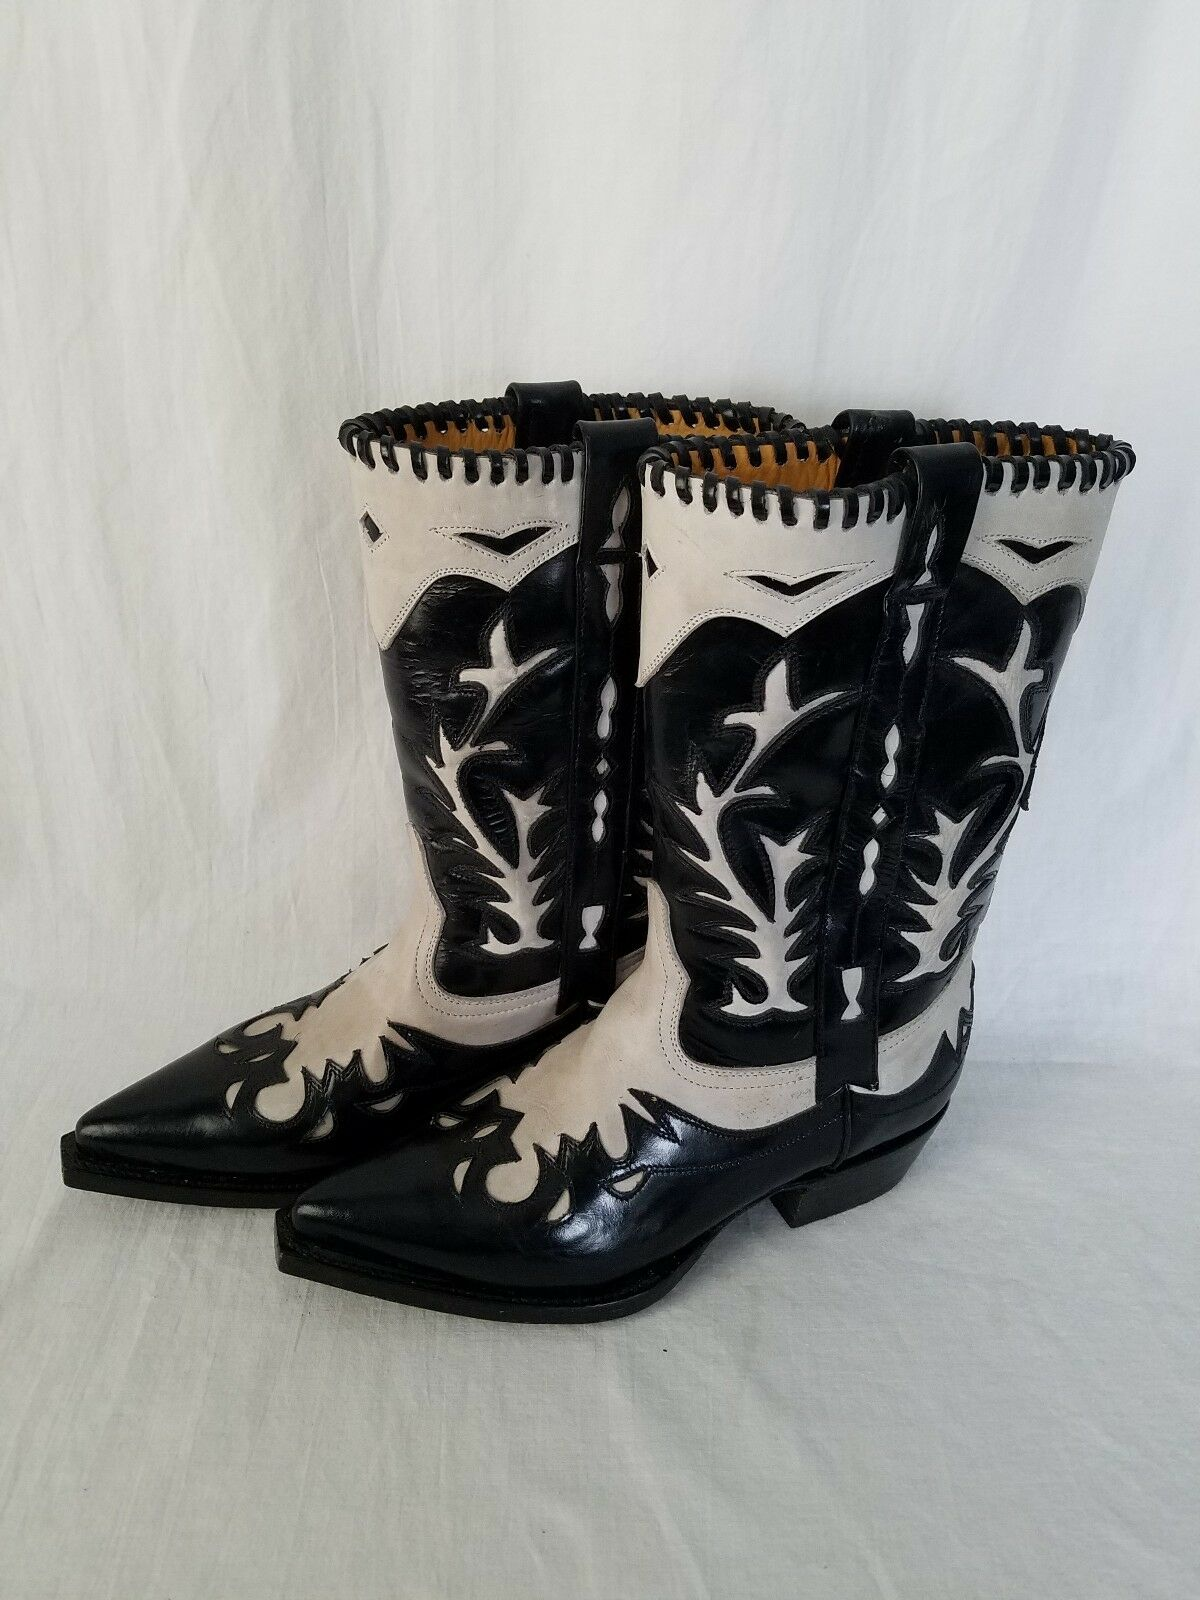 Western BOOTS AFRICAN Mens Two Tone Distressed Leather Boots NWT Size 24.5 USA 6